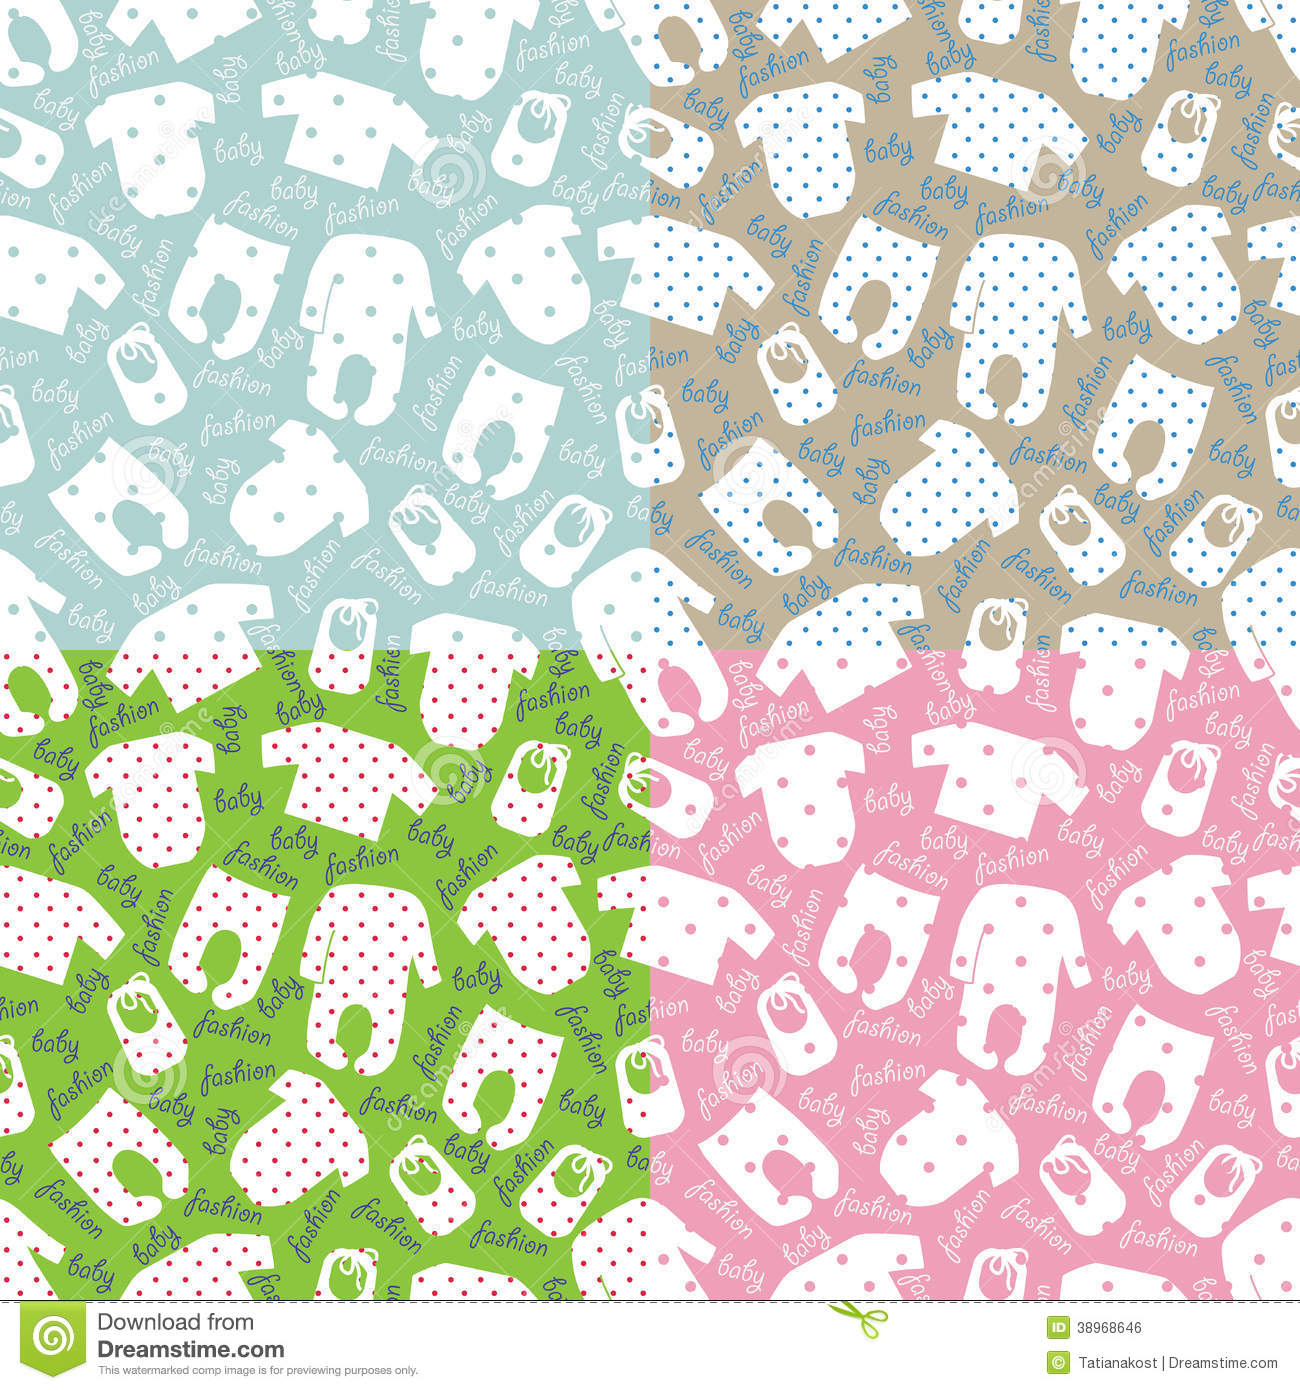 Colorful Clothes For Newborn Children Seamless Pattern Or Ornament With Polka DotSet Of PatternUnisex Models Baby FashionFor FabricsWallpaperpackaging